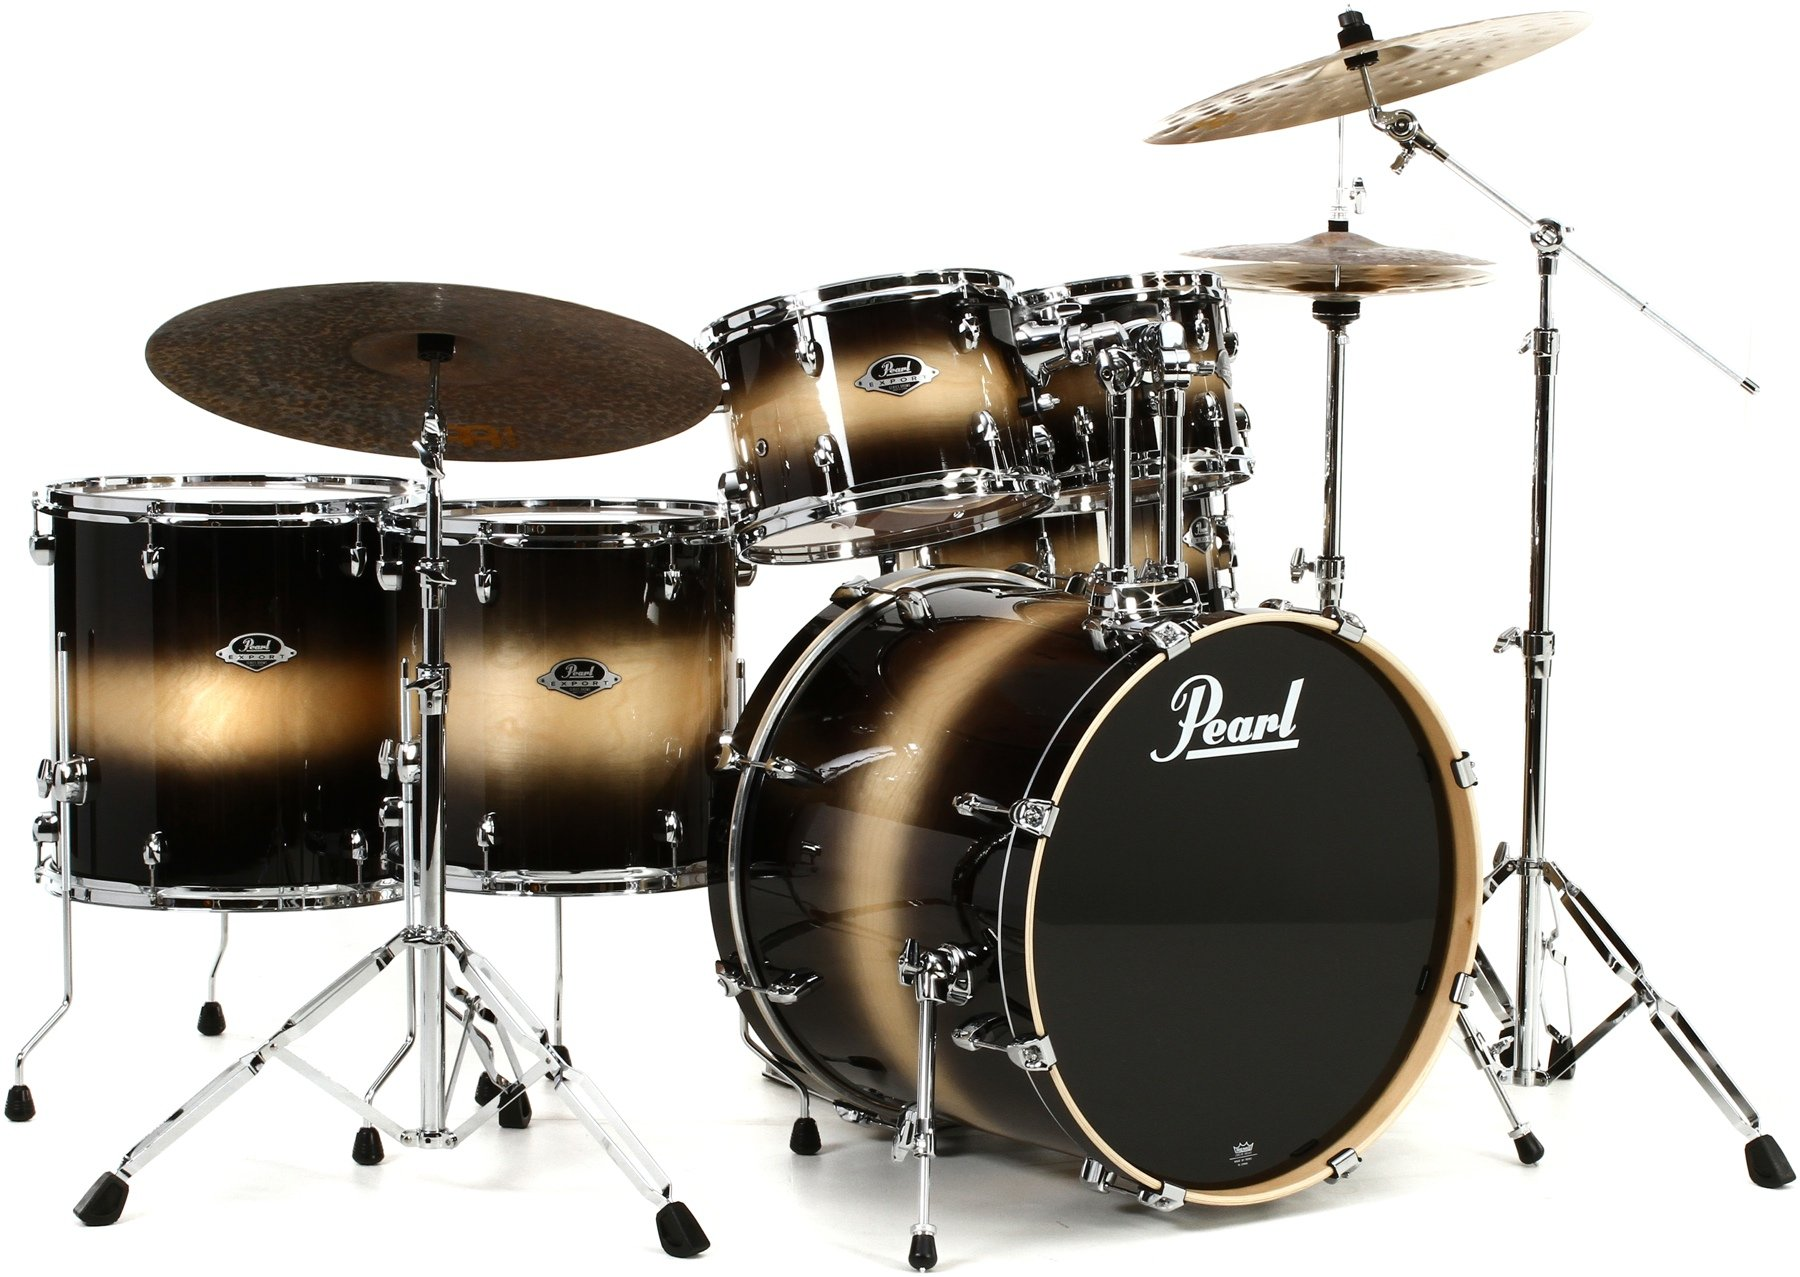 Pearl Export EXL 6-piece Rock Drum Set with Hardware - Nightshade Lacquer